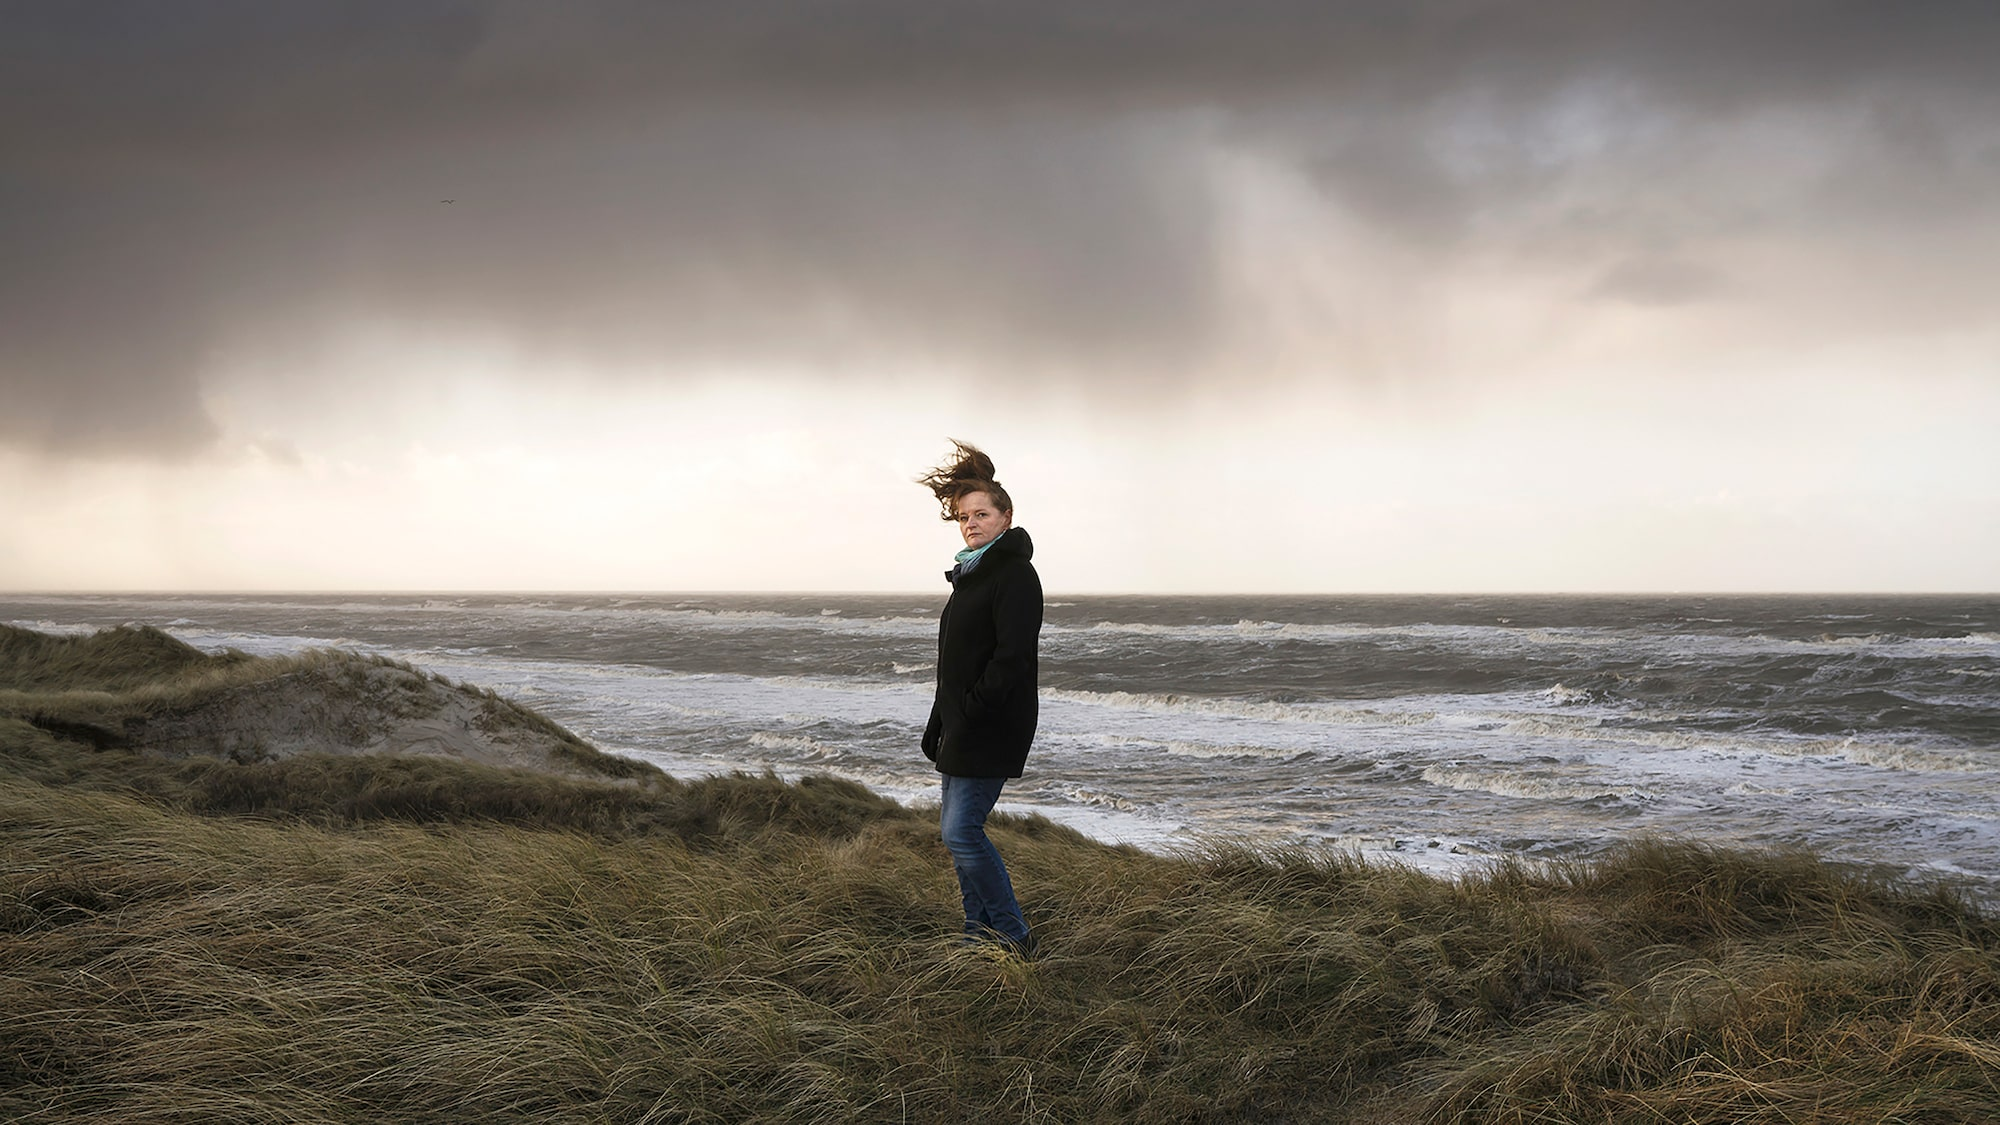 laerke posselt sony alpha 7R II a lady standing on a windy cliff top looking at the camera